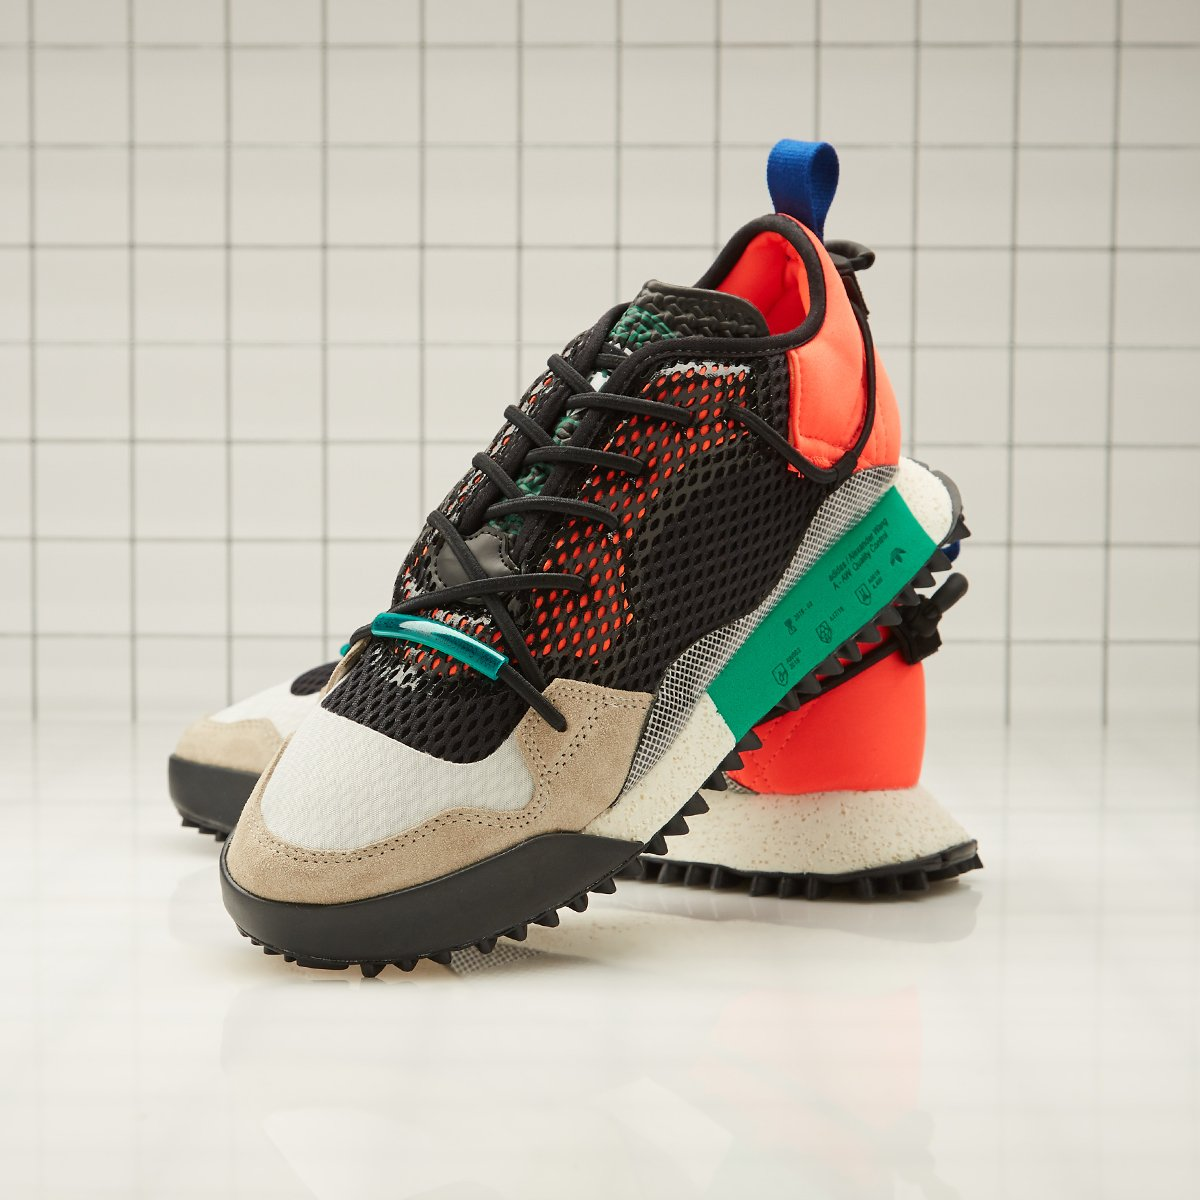 cd9319378948 The new adidas x Alexander Wang AW Reissue Run is available now at  SSENSE  in two colourways for  310 + free shipping. https   bit.ly 2rUsVtt ...